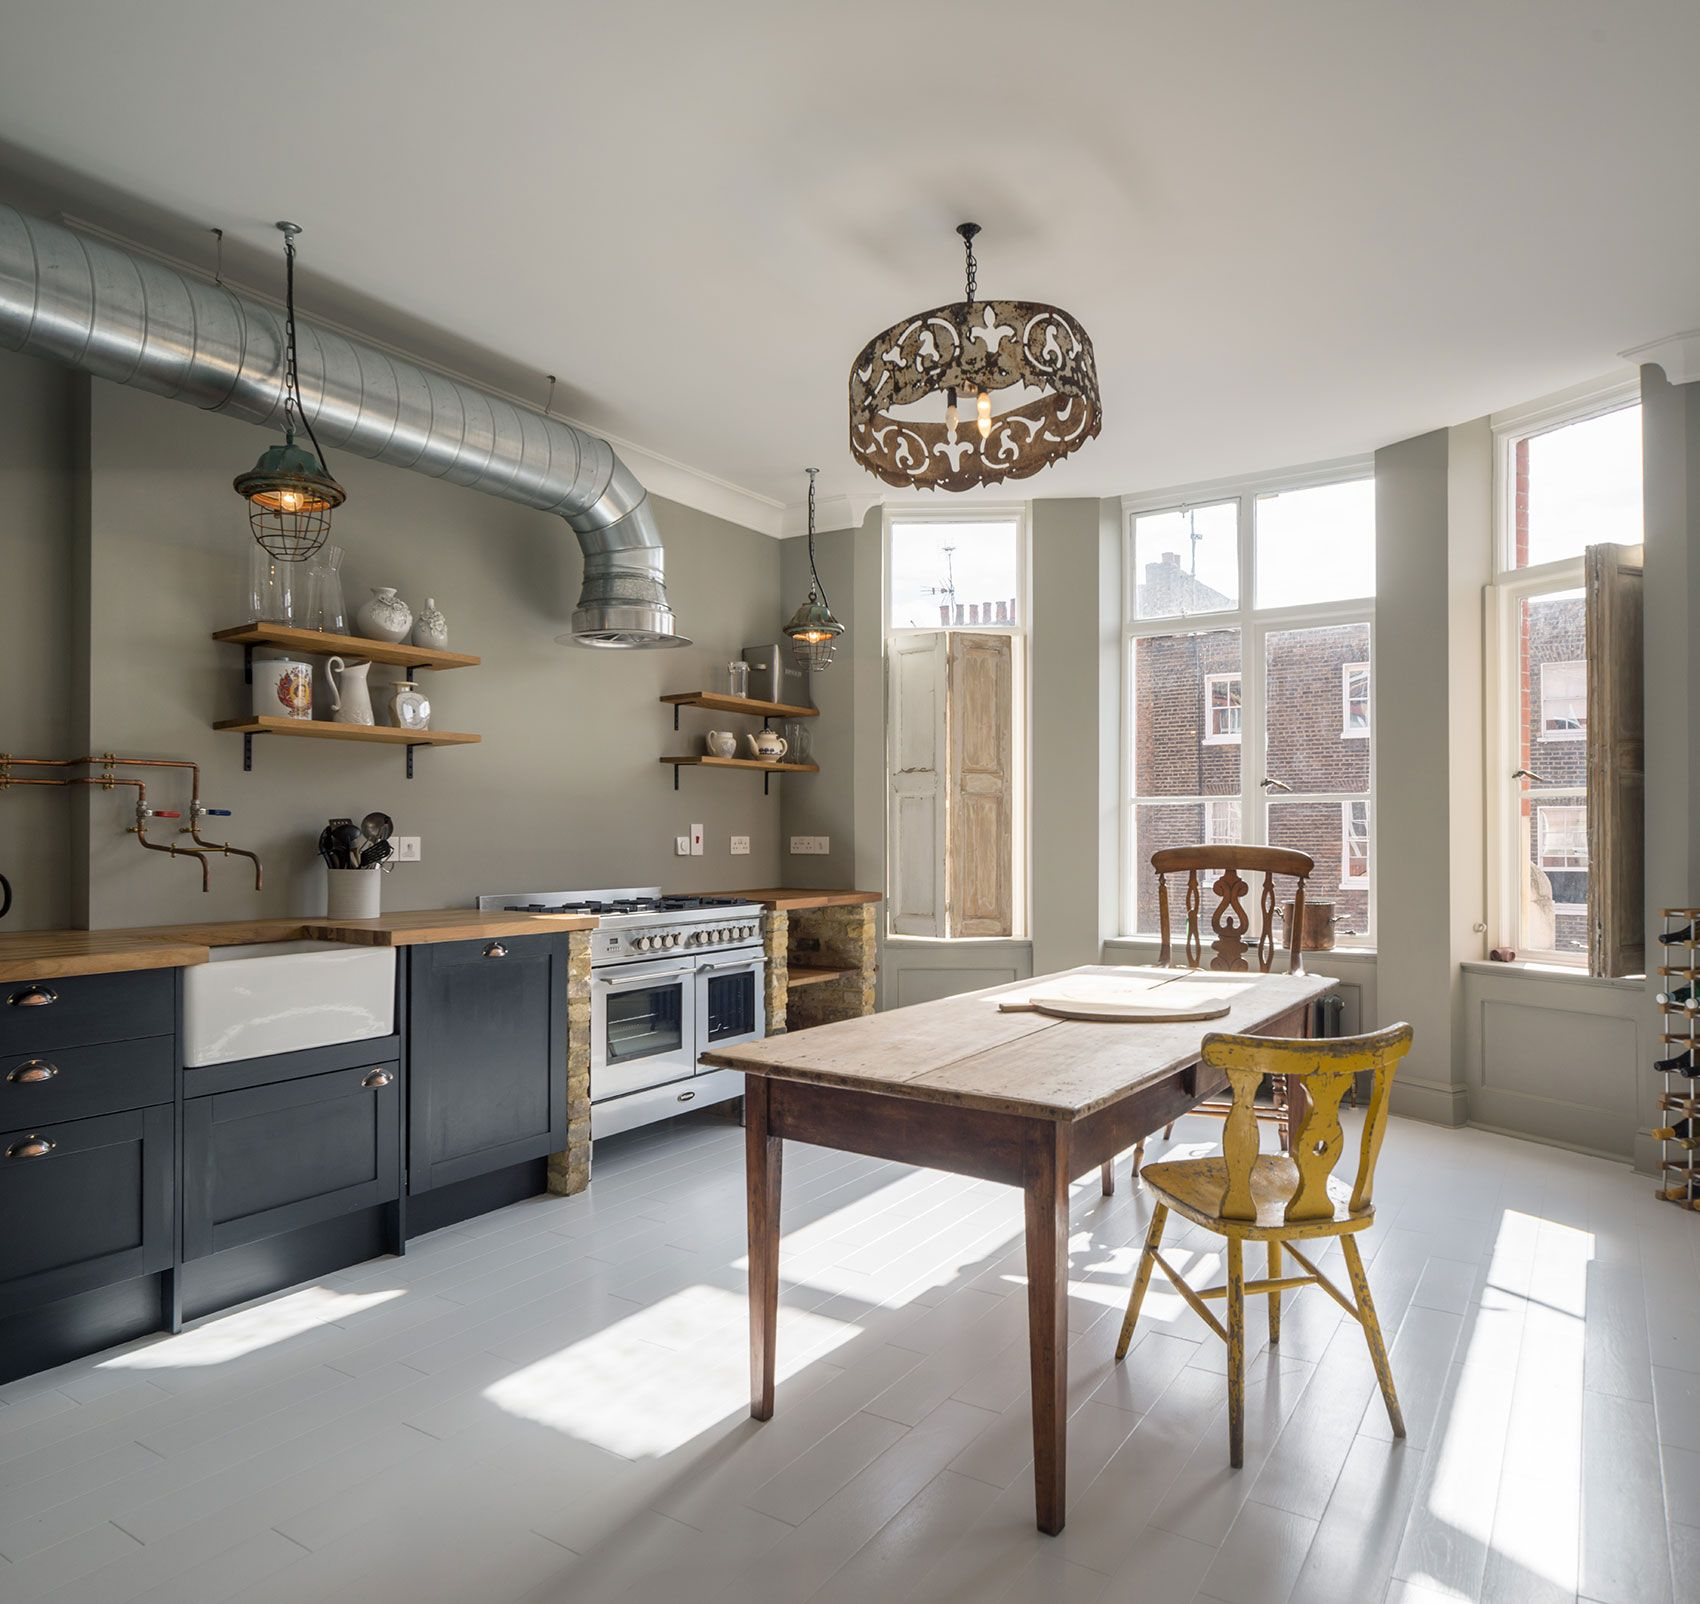 Fitted Kitchen Interior Designs Ideas Kitchen Cabinet: Traditional British Cabinets, Industrial Non Fitted